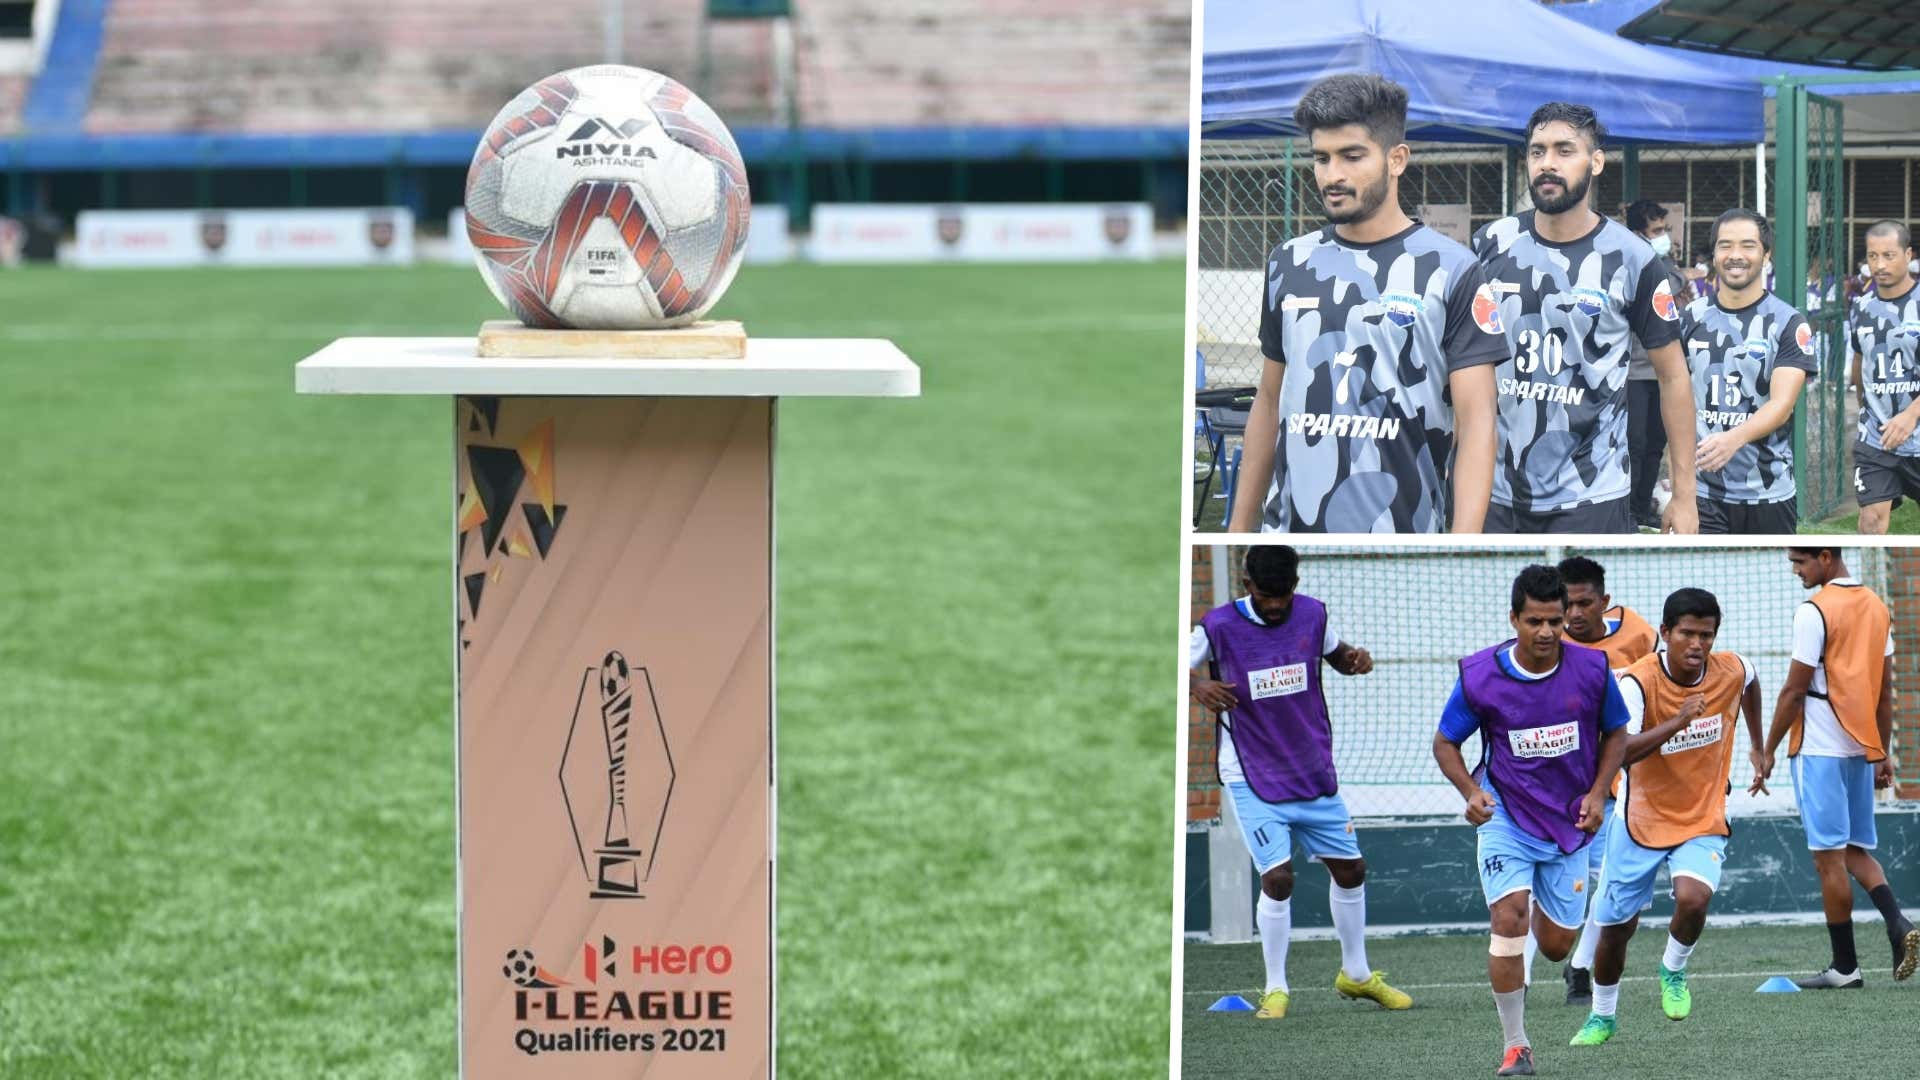 I-League Qualifiers 2021 – Final round: Teams, fixtures, table, top scorers and all you need to know